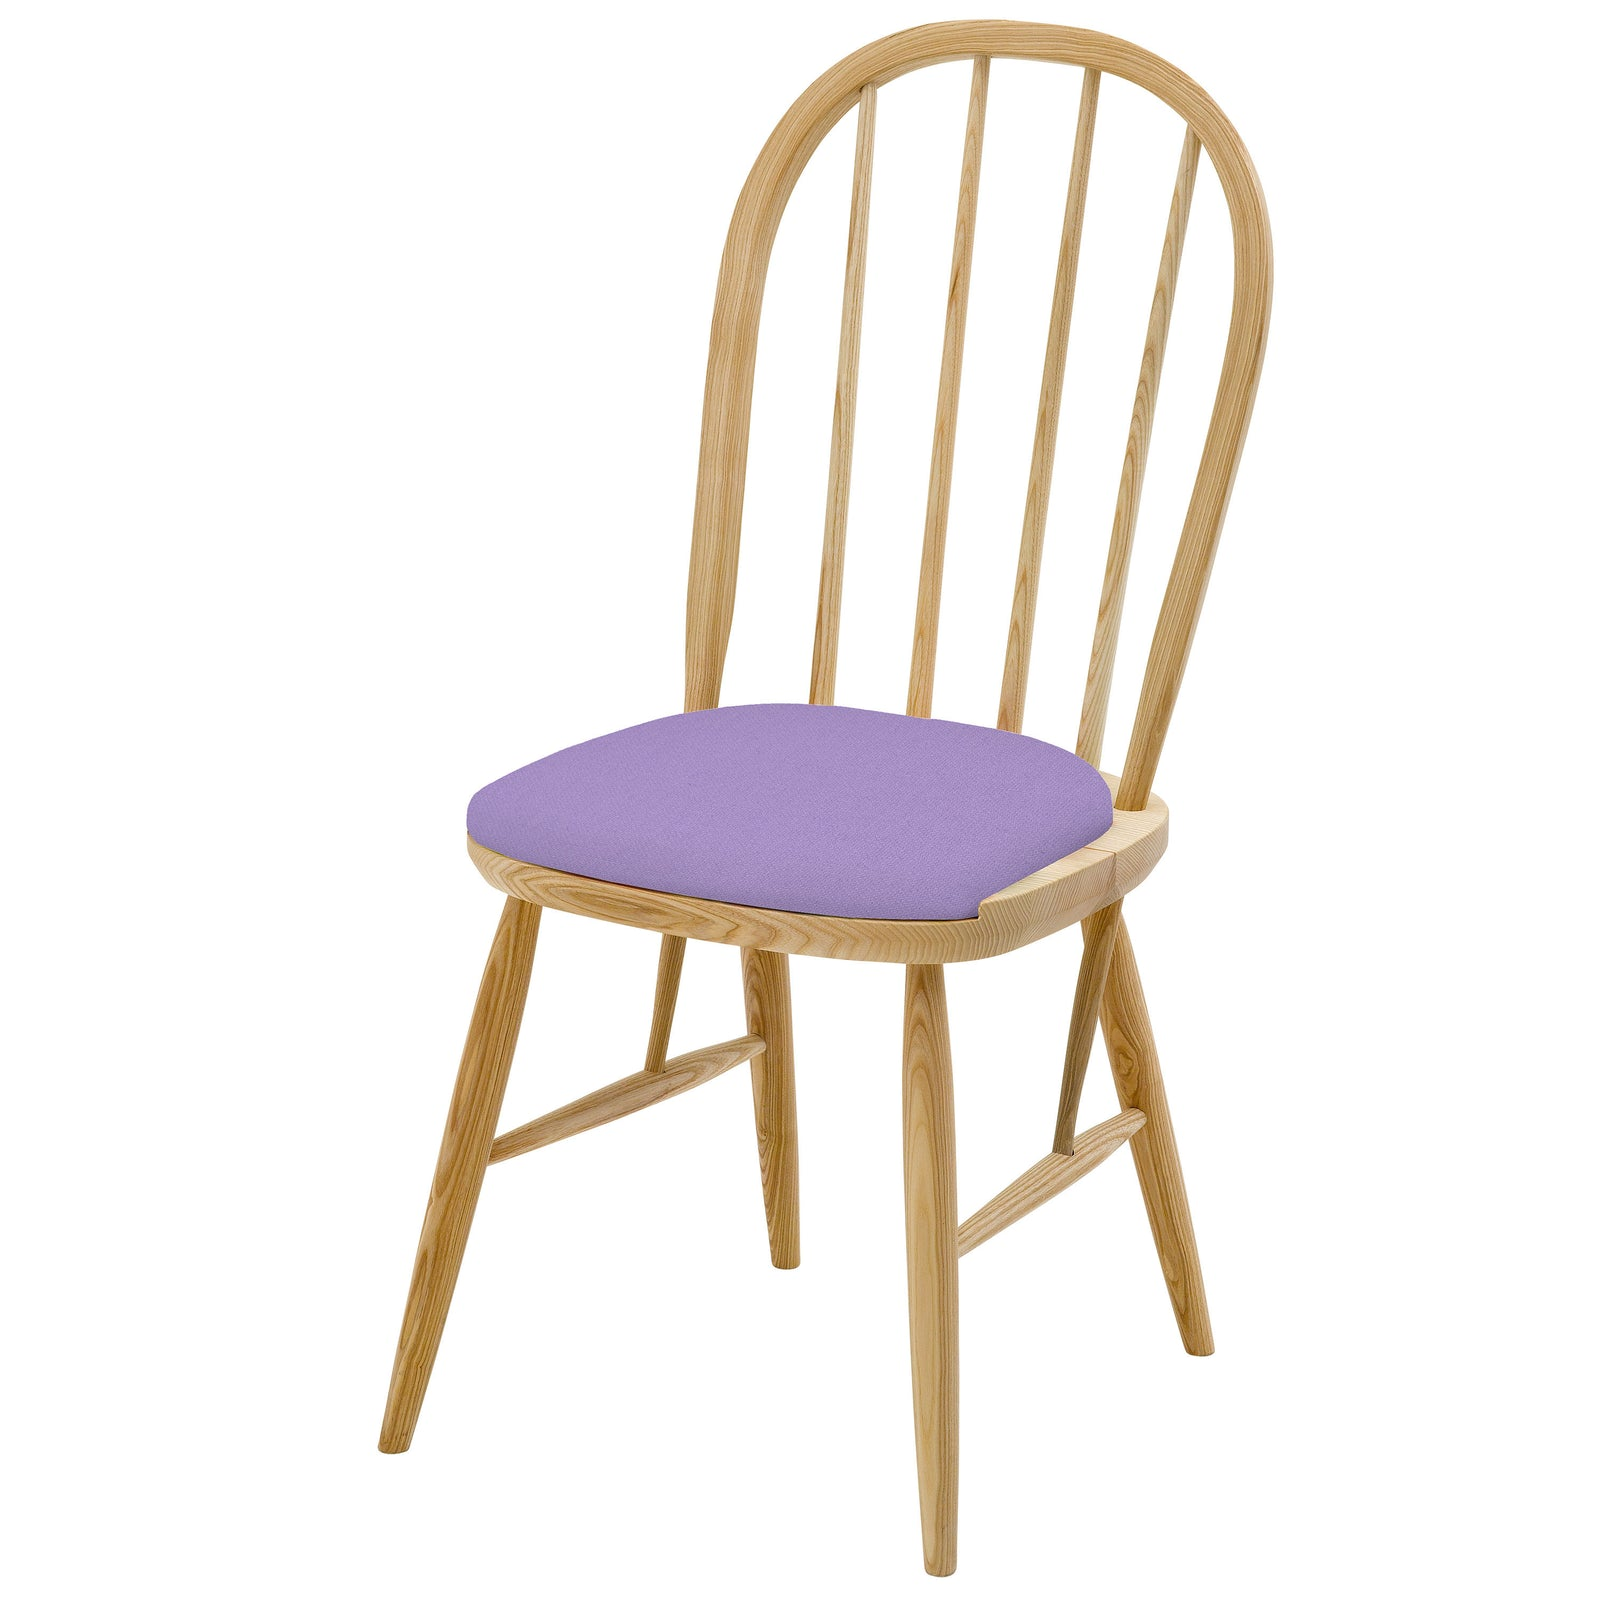 The Elkin Dining Chair handmade-to-order in your chosen colourway.